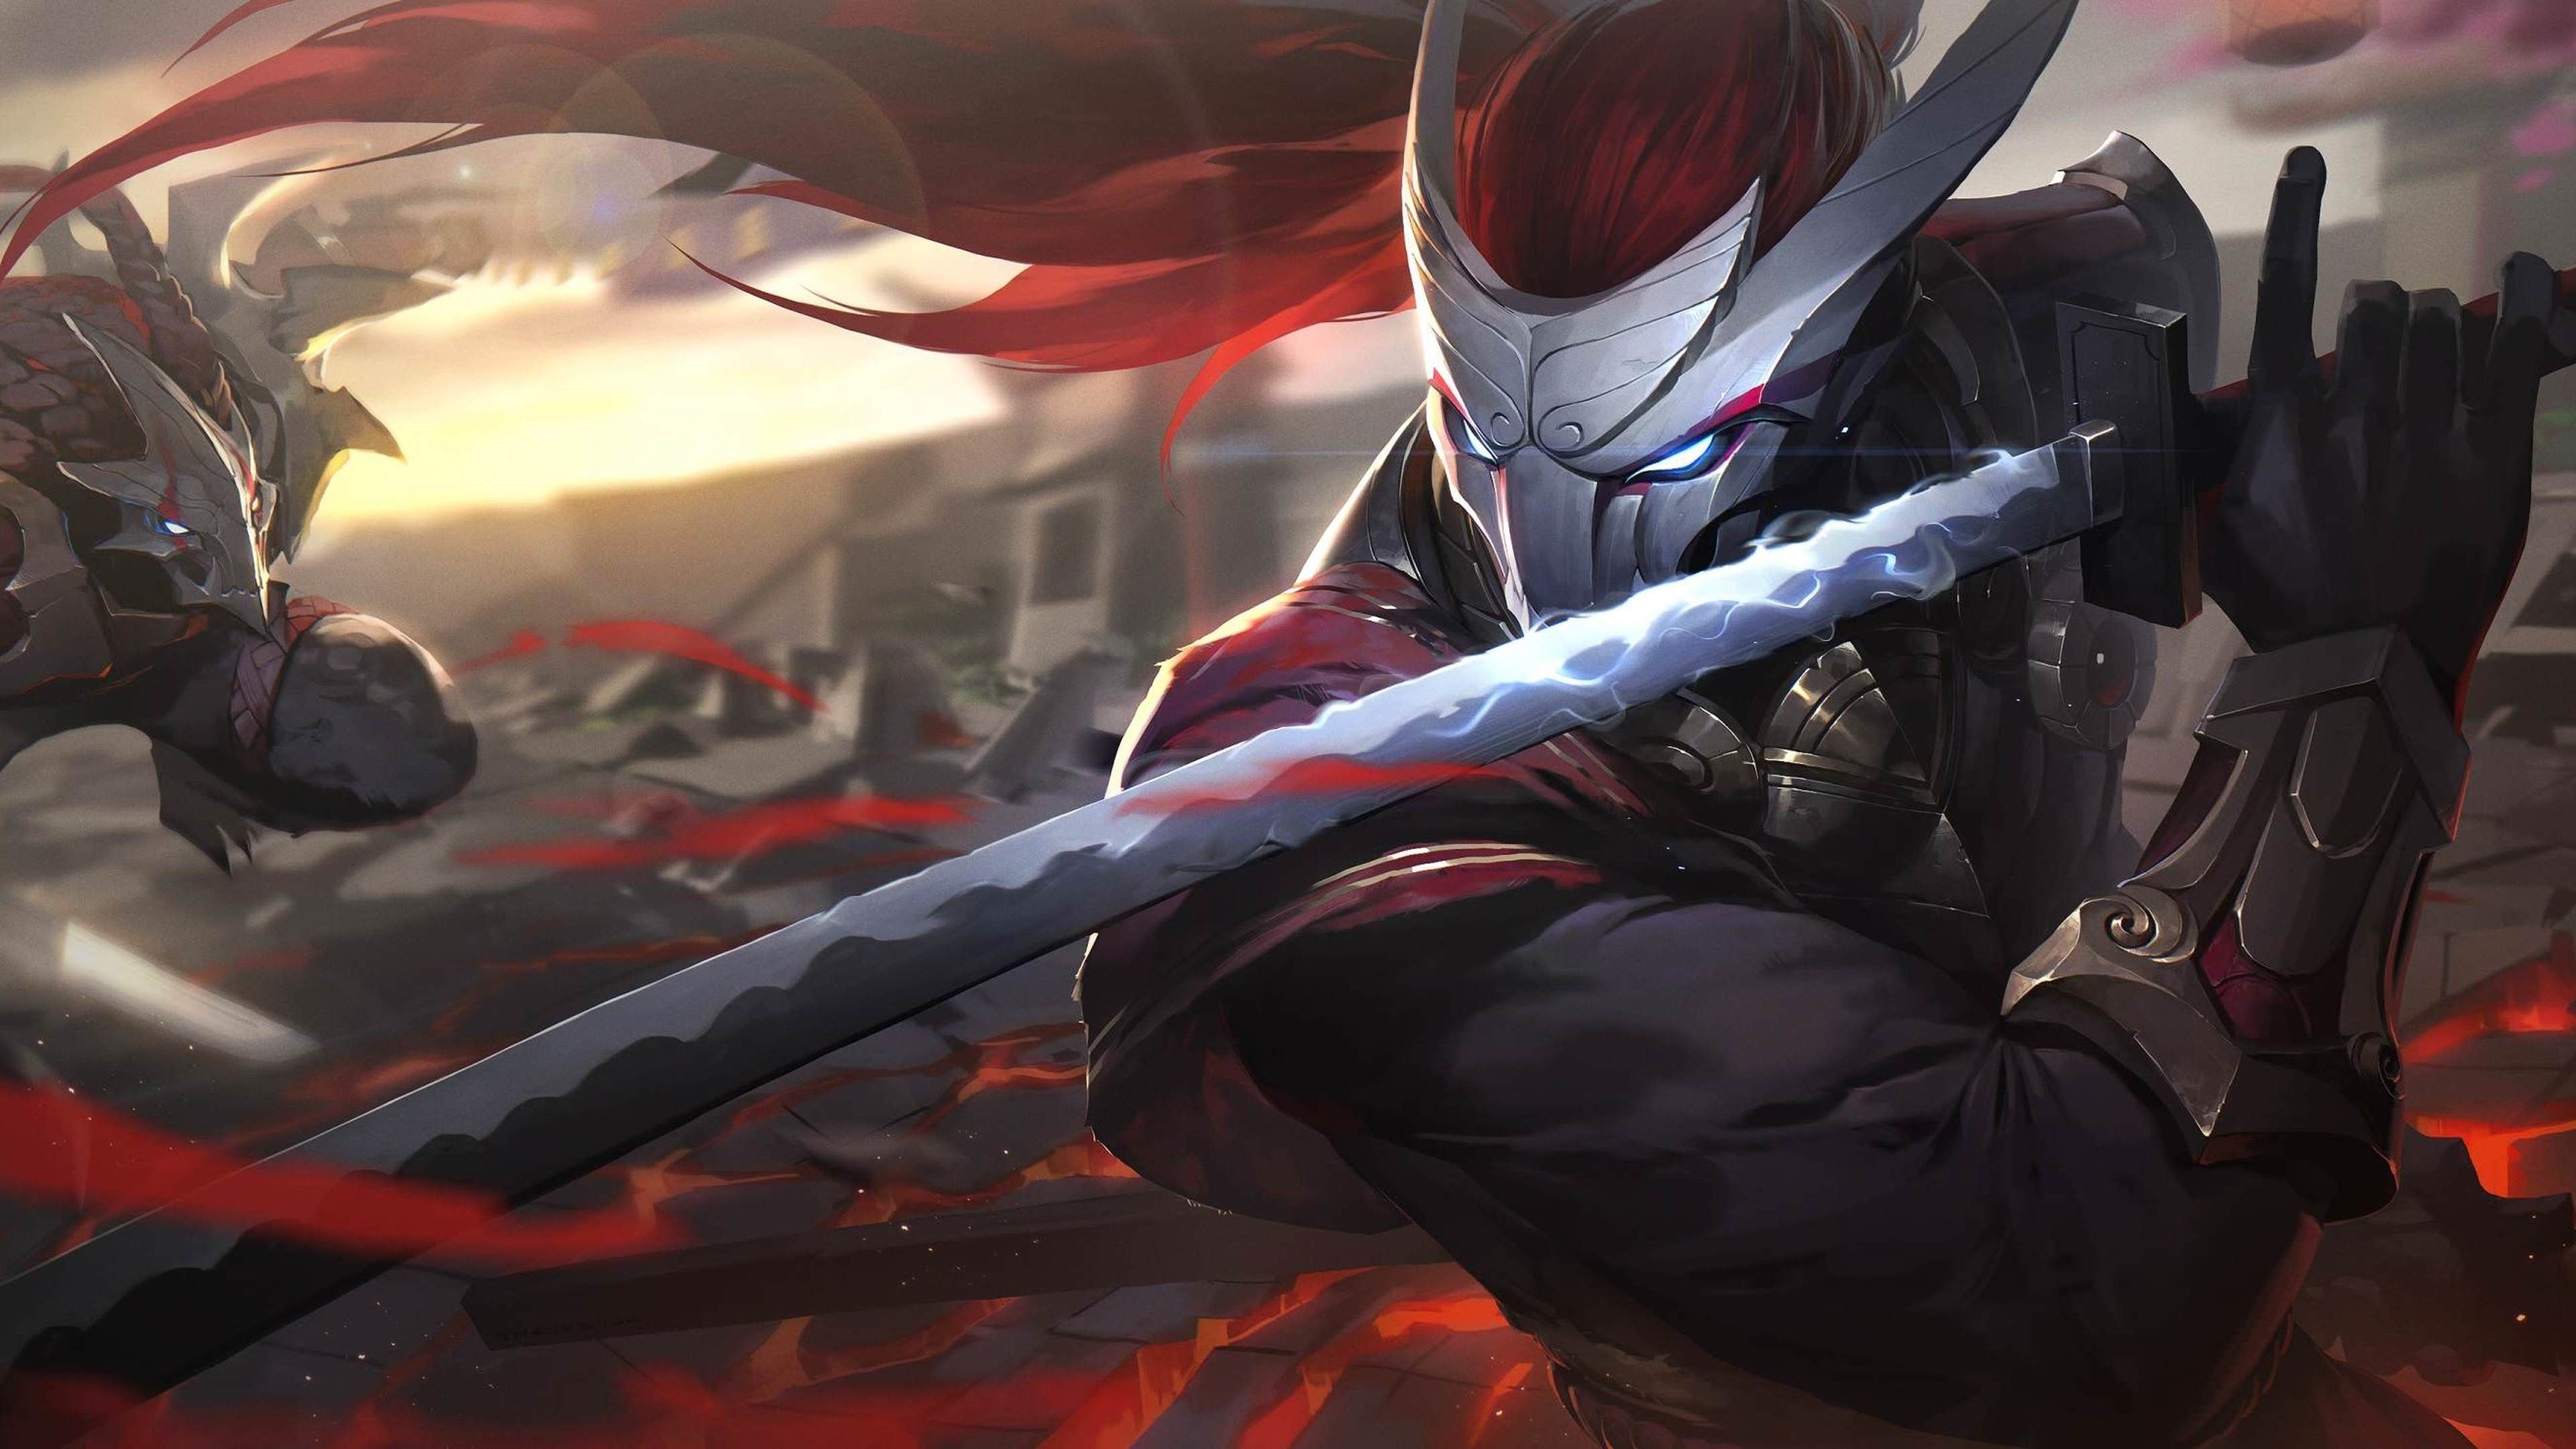 Rengar And Yasuo League Of Legends League Of Legends Wallpapers Hd Wallpapers Games Wallpapers League Of Legends Yasuo Yasuo League League Of Legends Poster